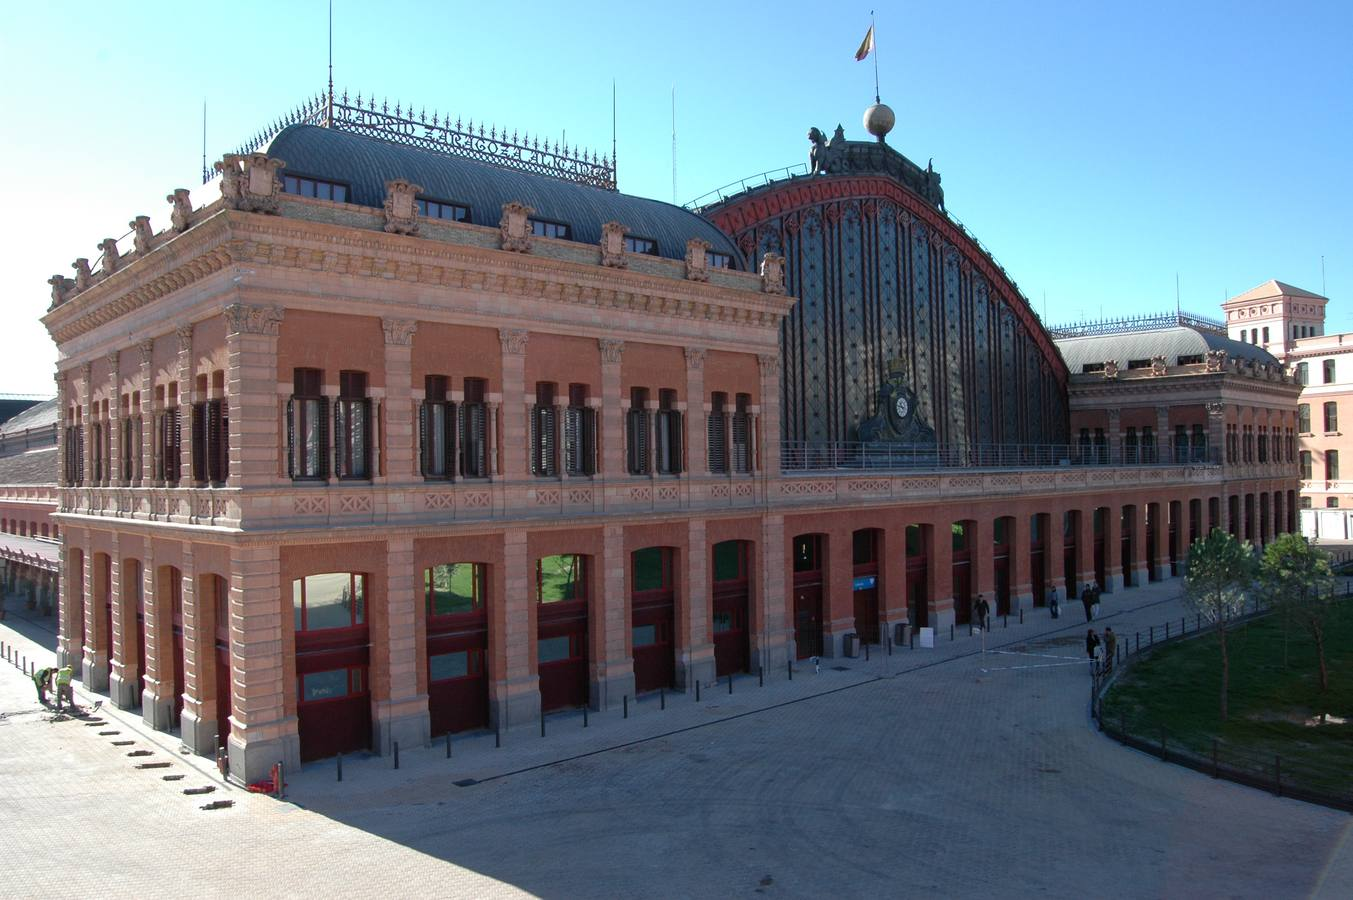 8. Atocha (Madrid)